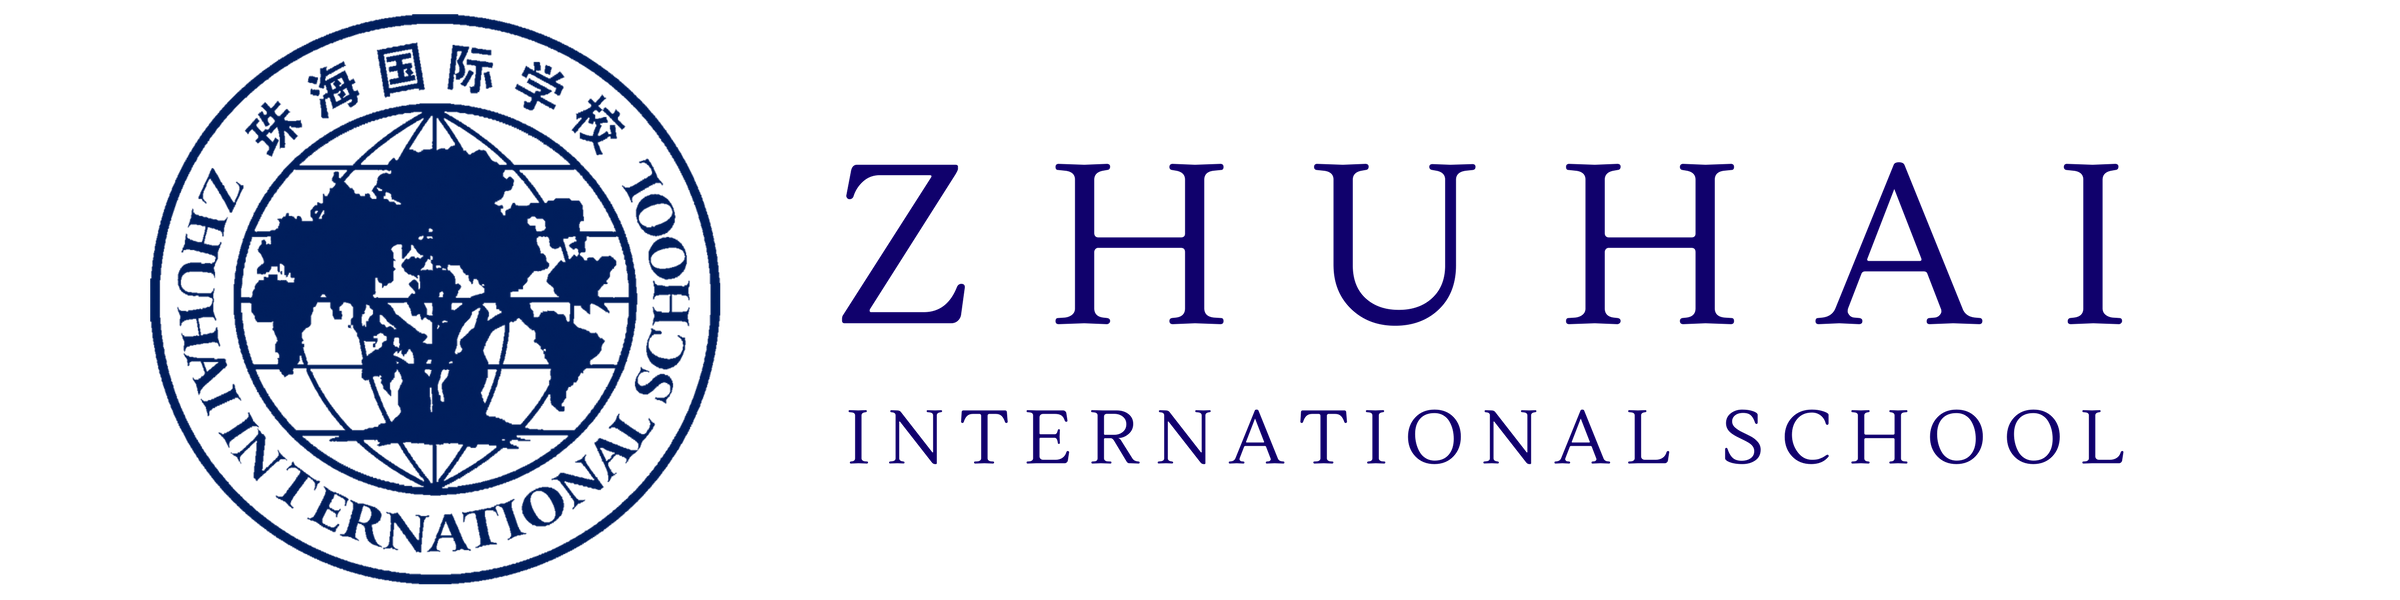 Zhuhai International School